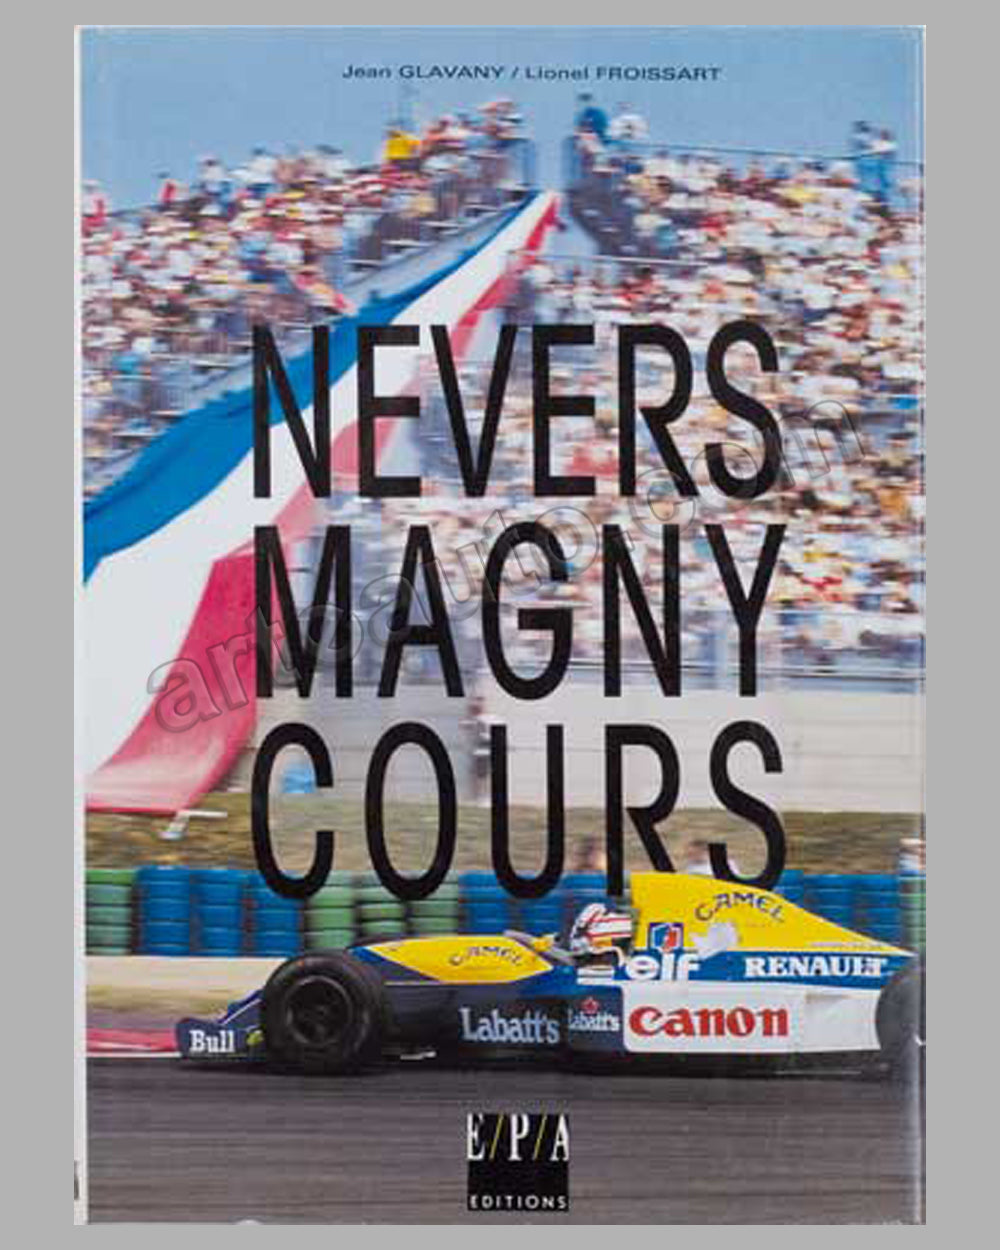 Nevers Magny Cours book by Jean Glavany and Lionel Froissart, 1992 ed.